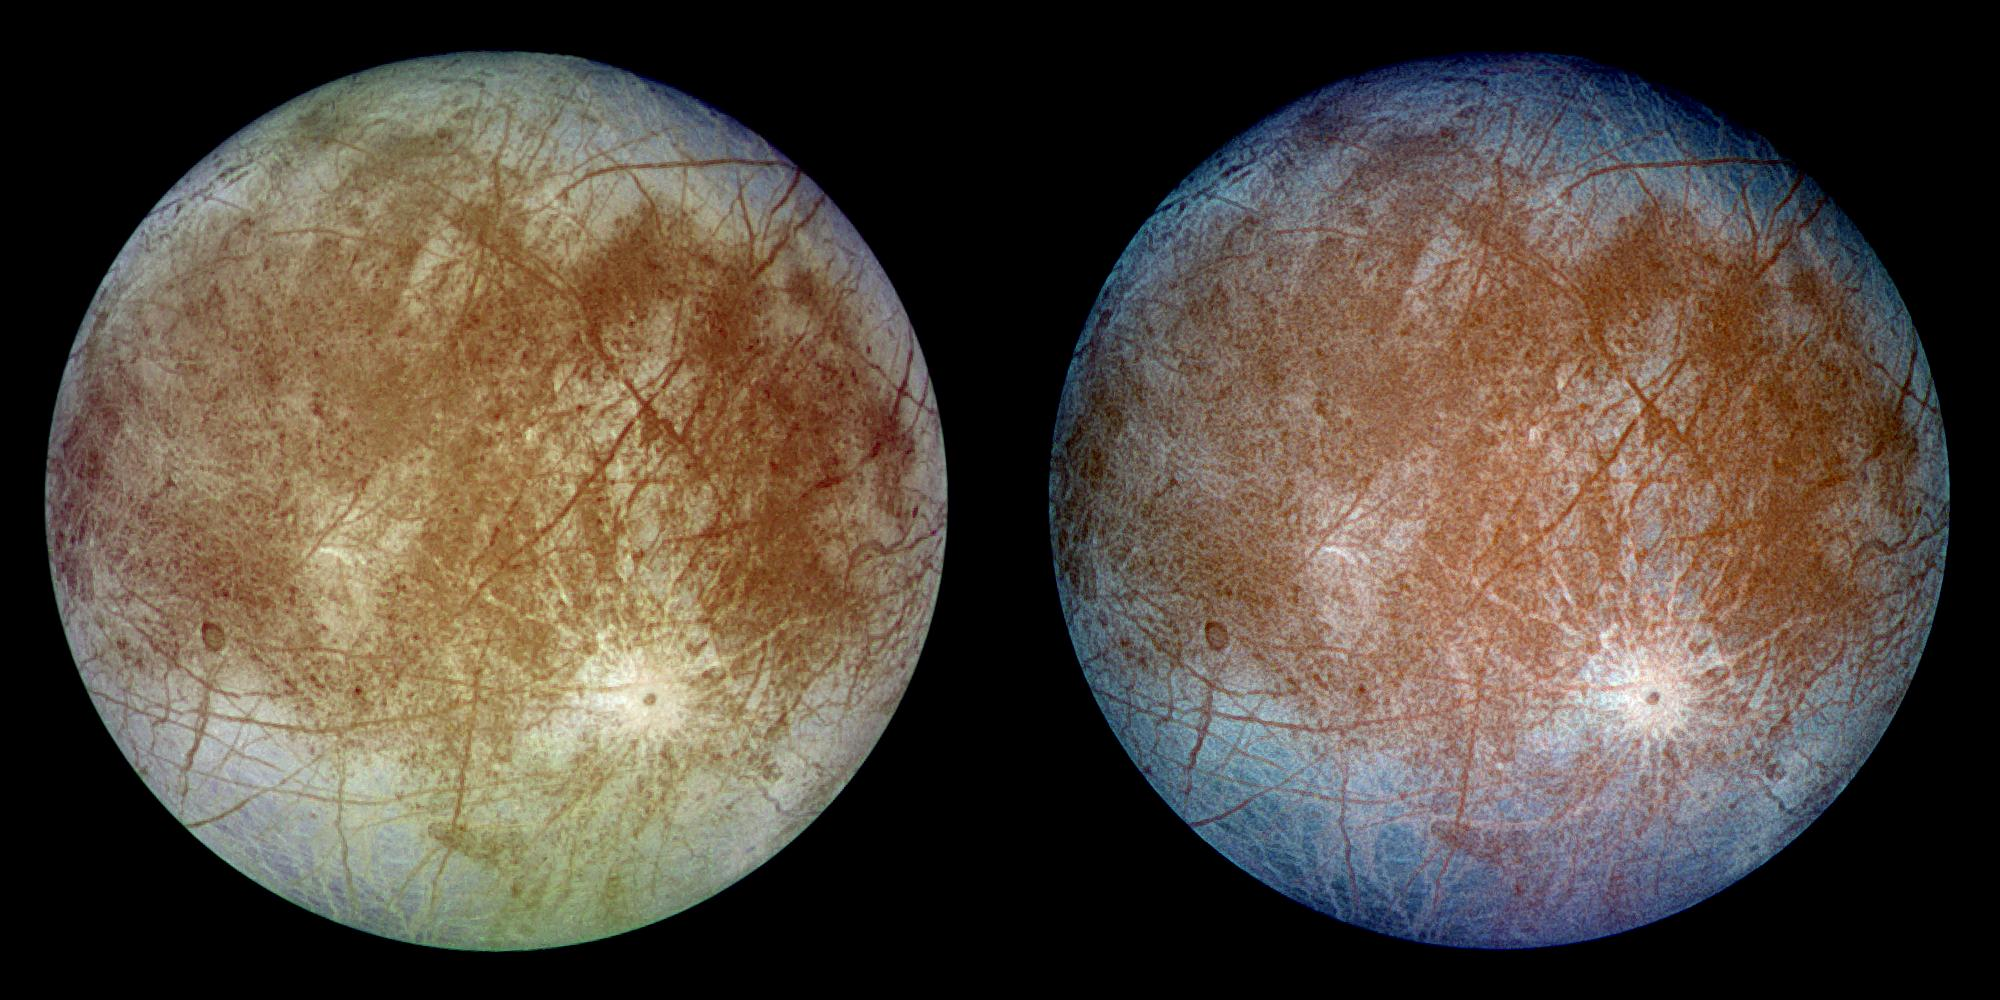 This image shows two views of the trailing hemisphere of Jupiter's ice-covered satellite, Europa.